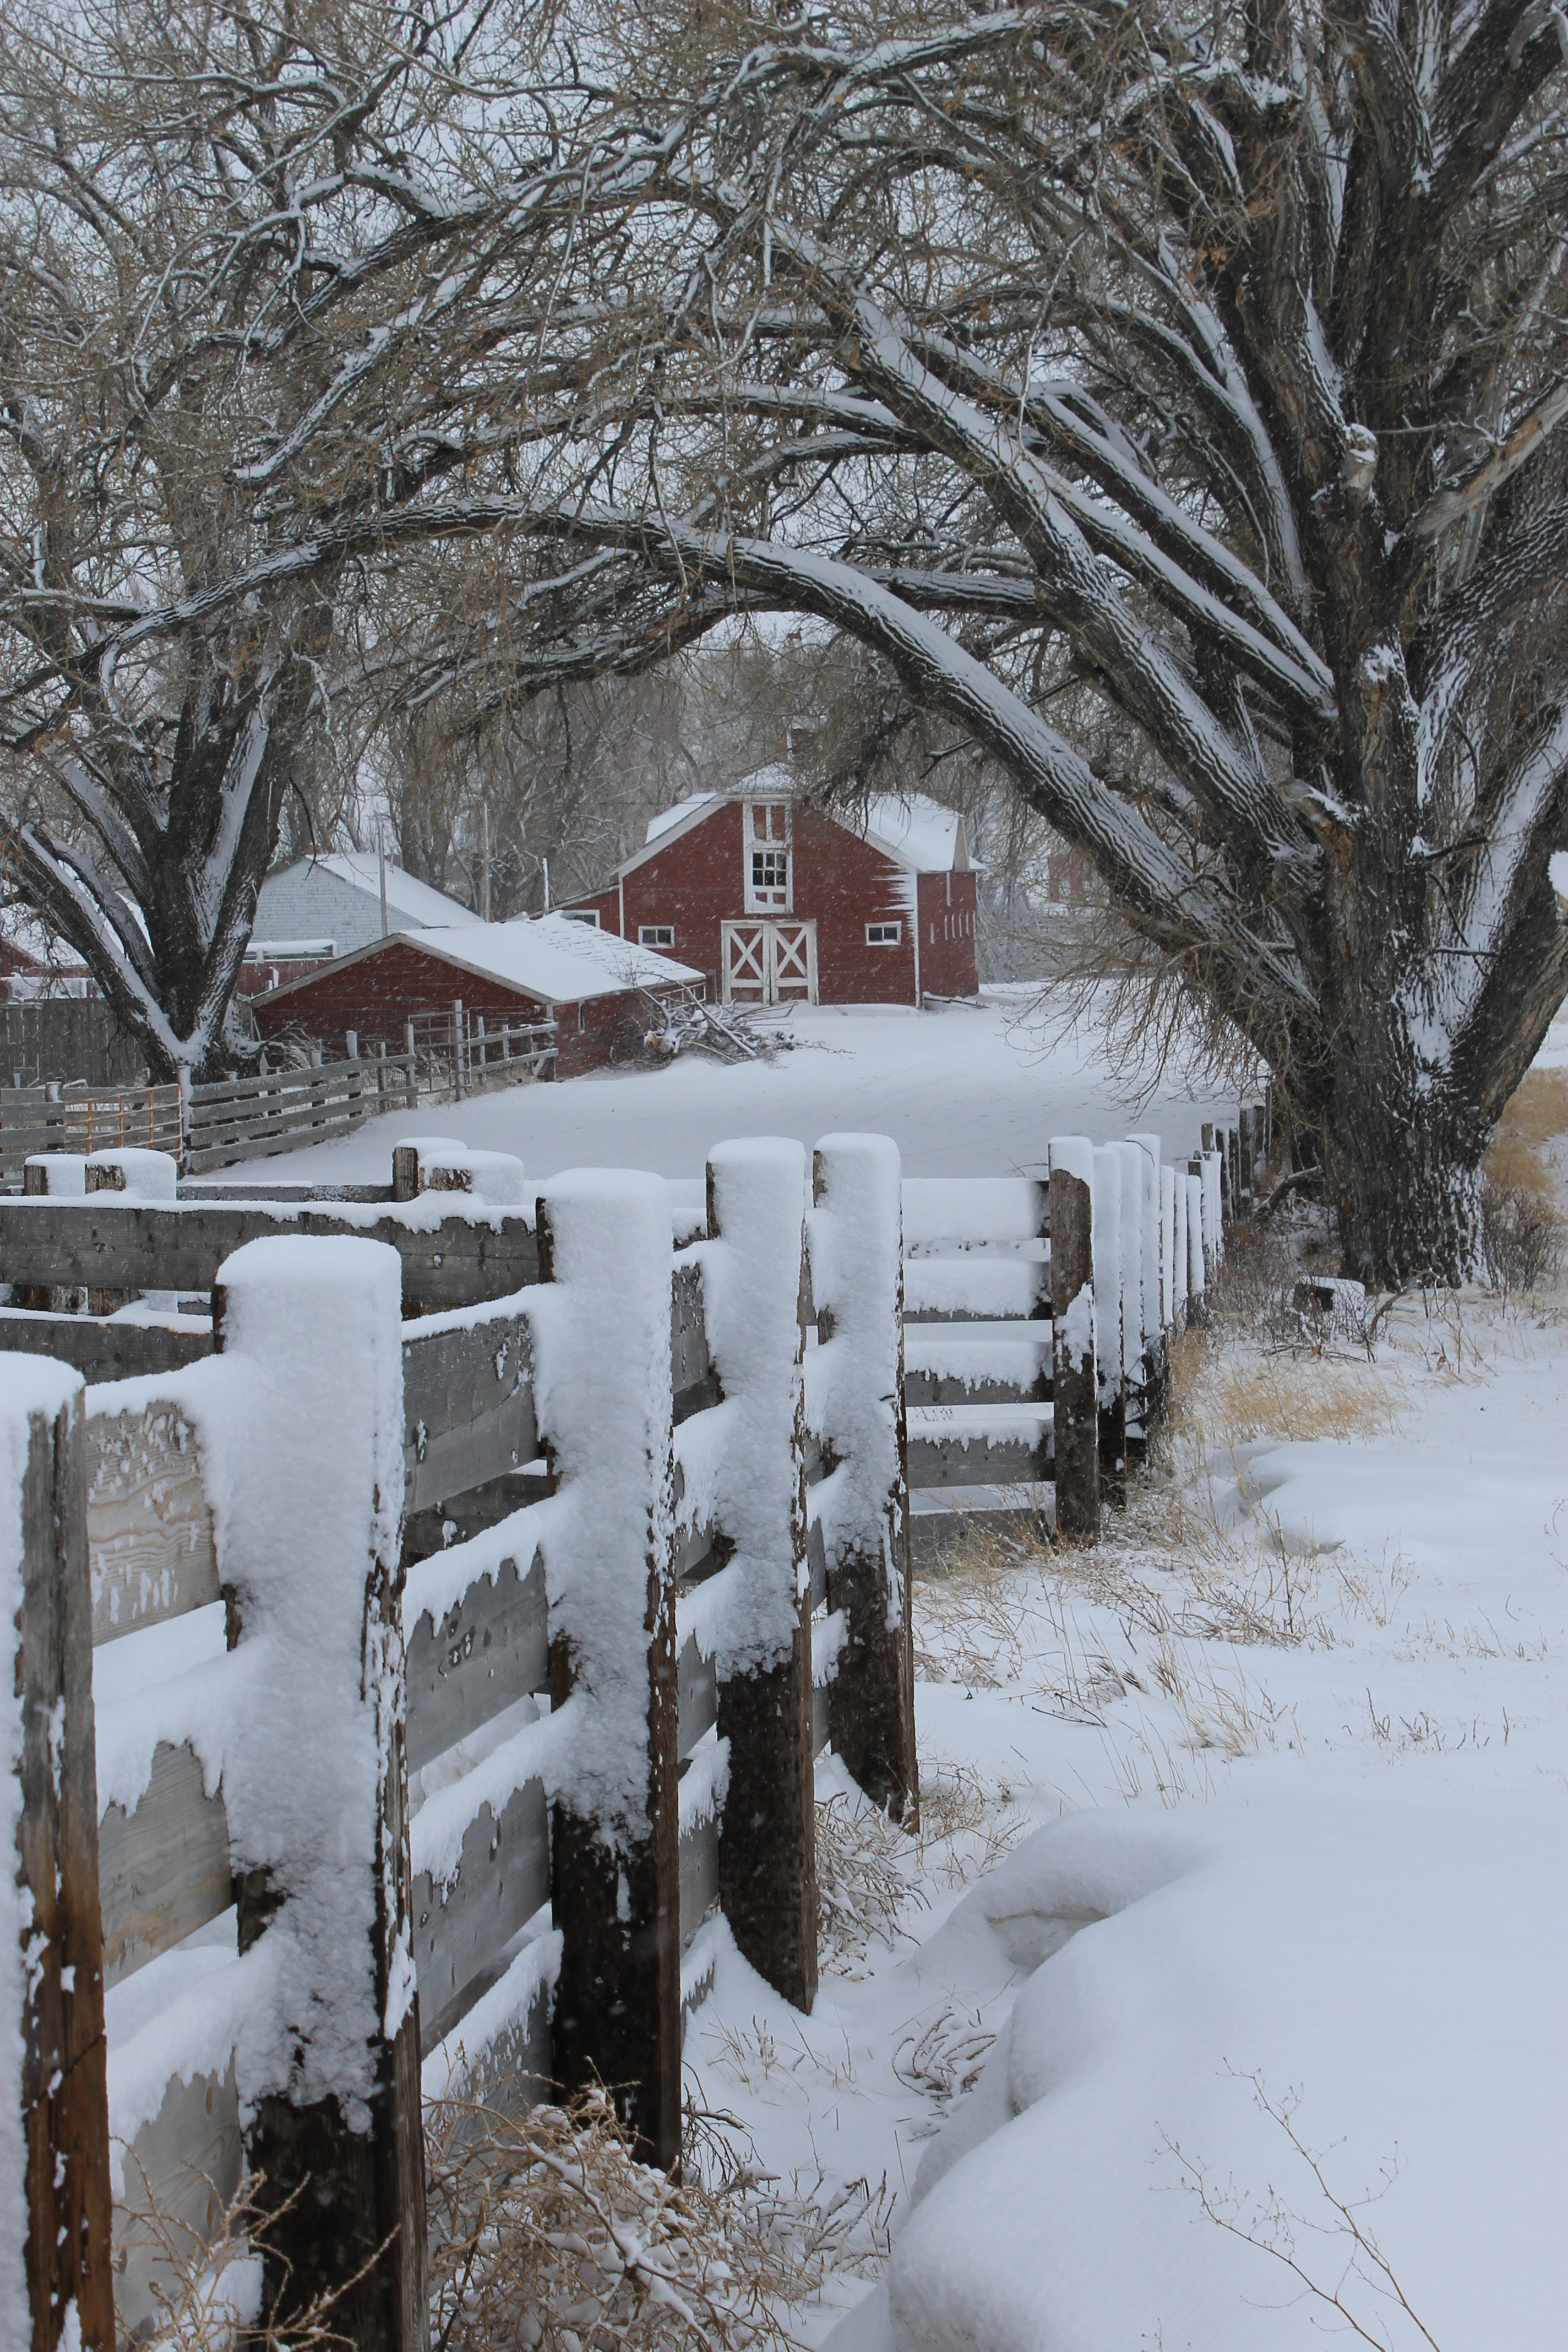 Beautiful Winter Outfit Www Pinterest Com: 1000+ Images About Farm Scenes On Pinterest